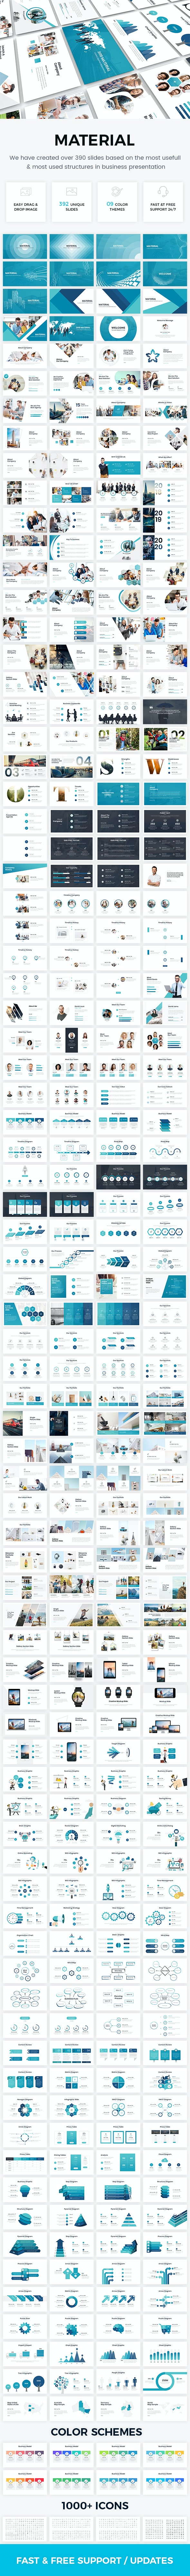 Material - Clean Business Powerpoint Template 2019 - Business PowerPoint Templates